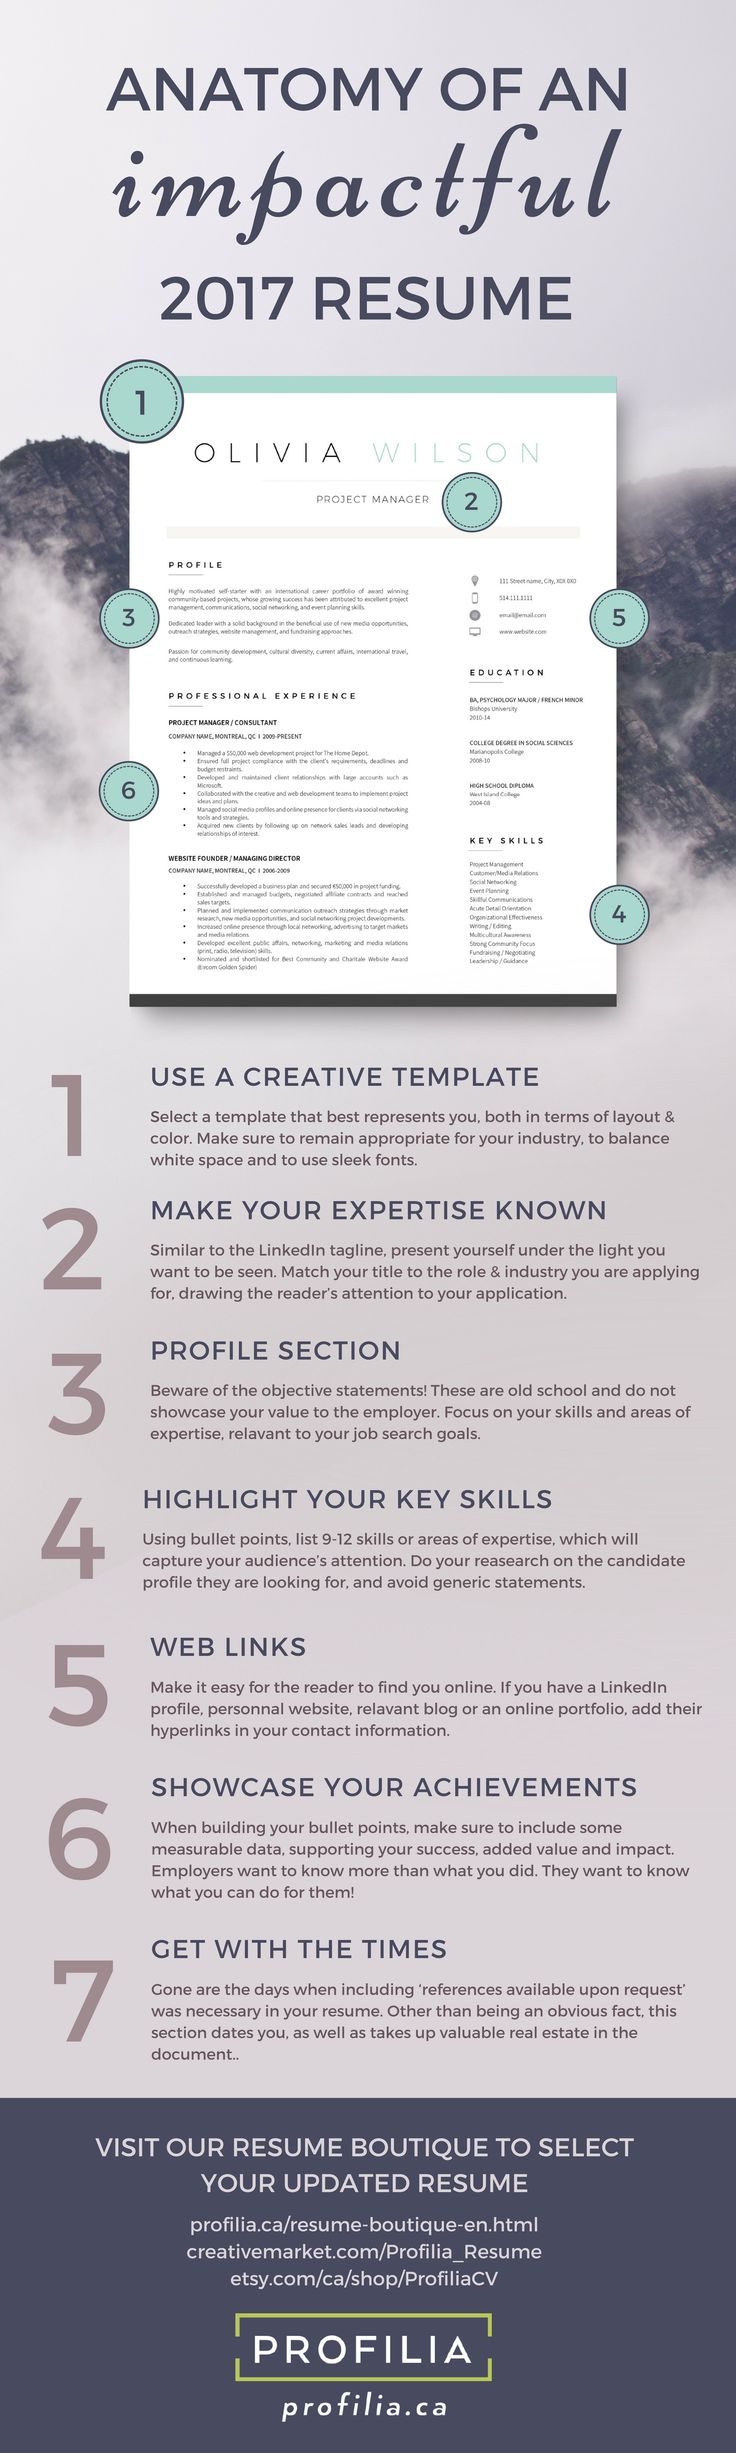 Anatomy of an impactful resume #resume #resumetips #resumetemplate #resumeadvice #creativeresume #job #jobsearch #jobseekers #jobs #cv